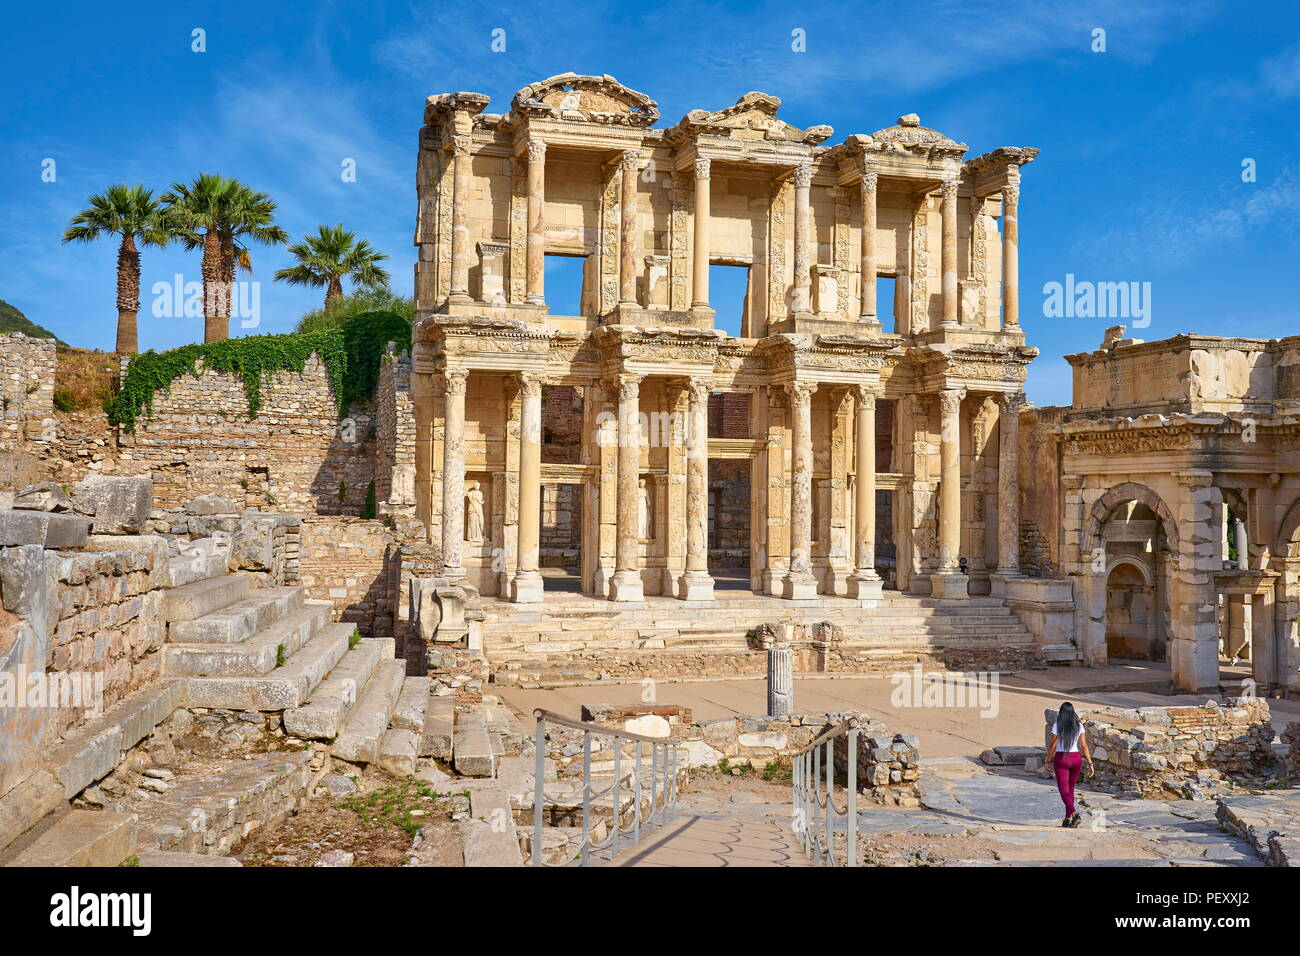 Efes - Library of Celsus in Ephesus Ancient City, Izmir, Turkey - Stock Image